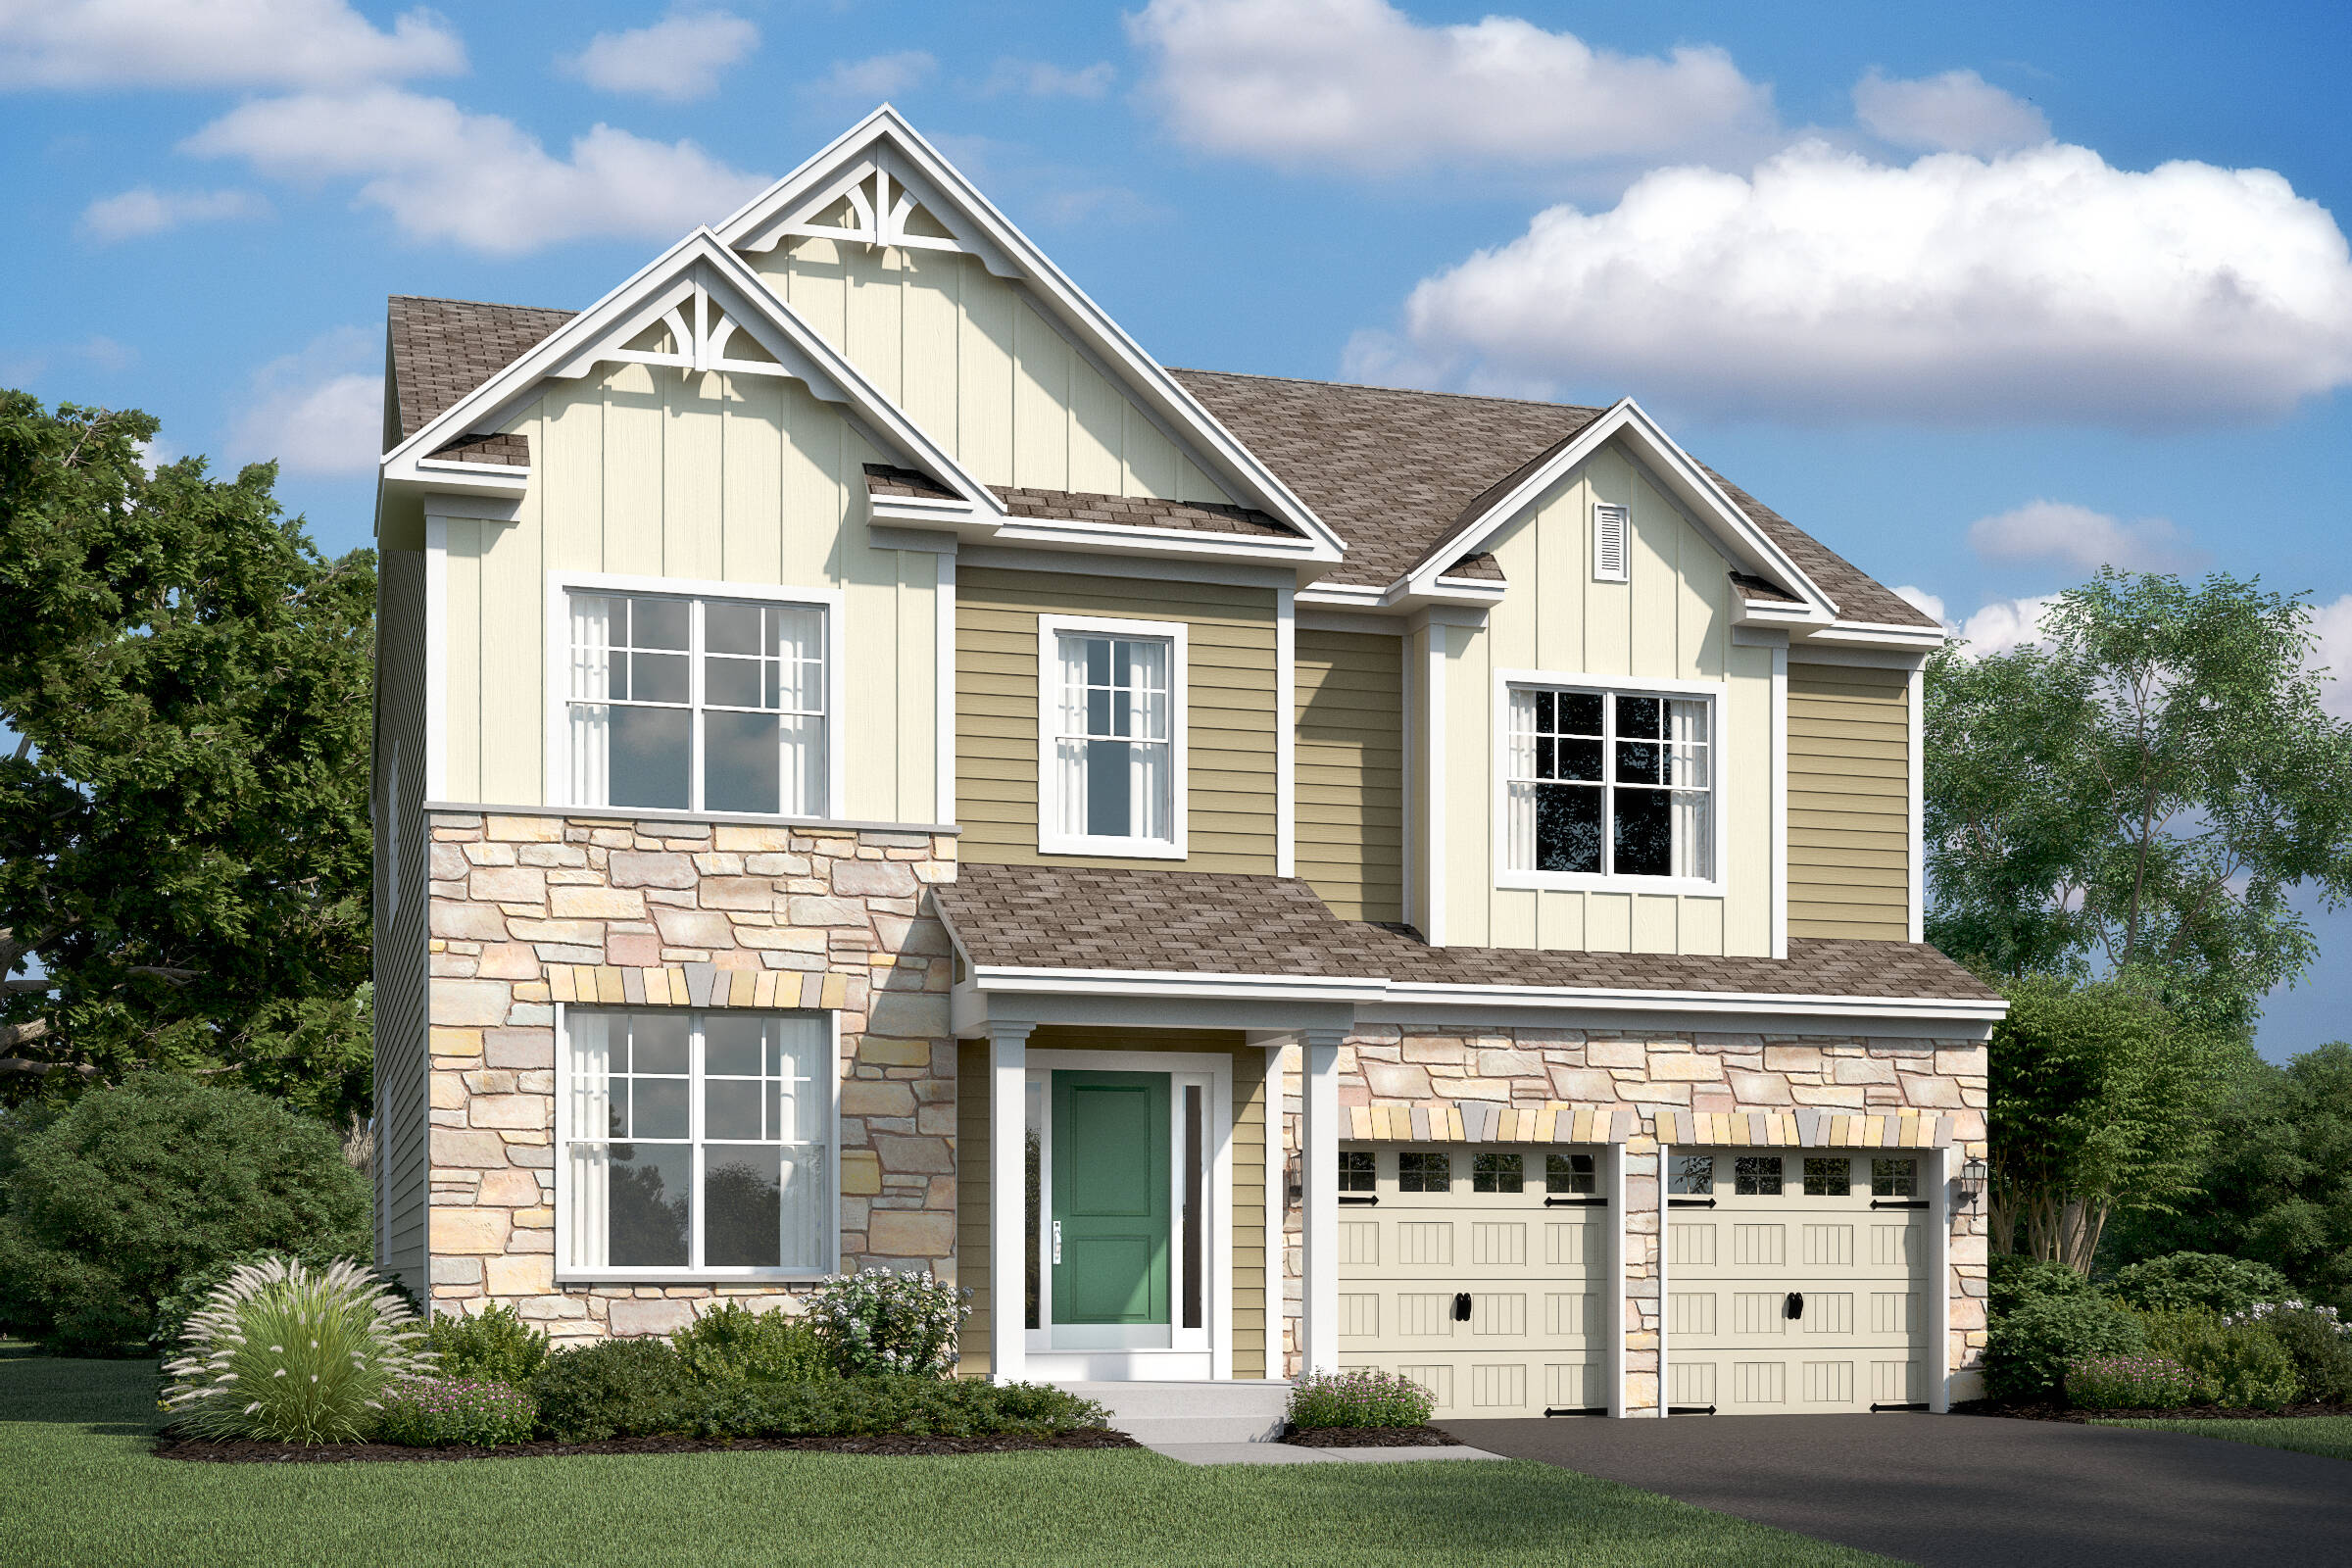 callahan-ii-at-new-homes-at-eden-terrace-in-maryland